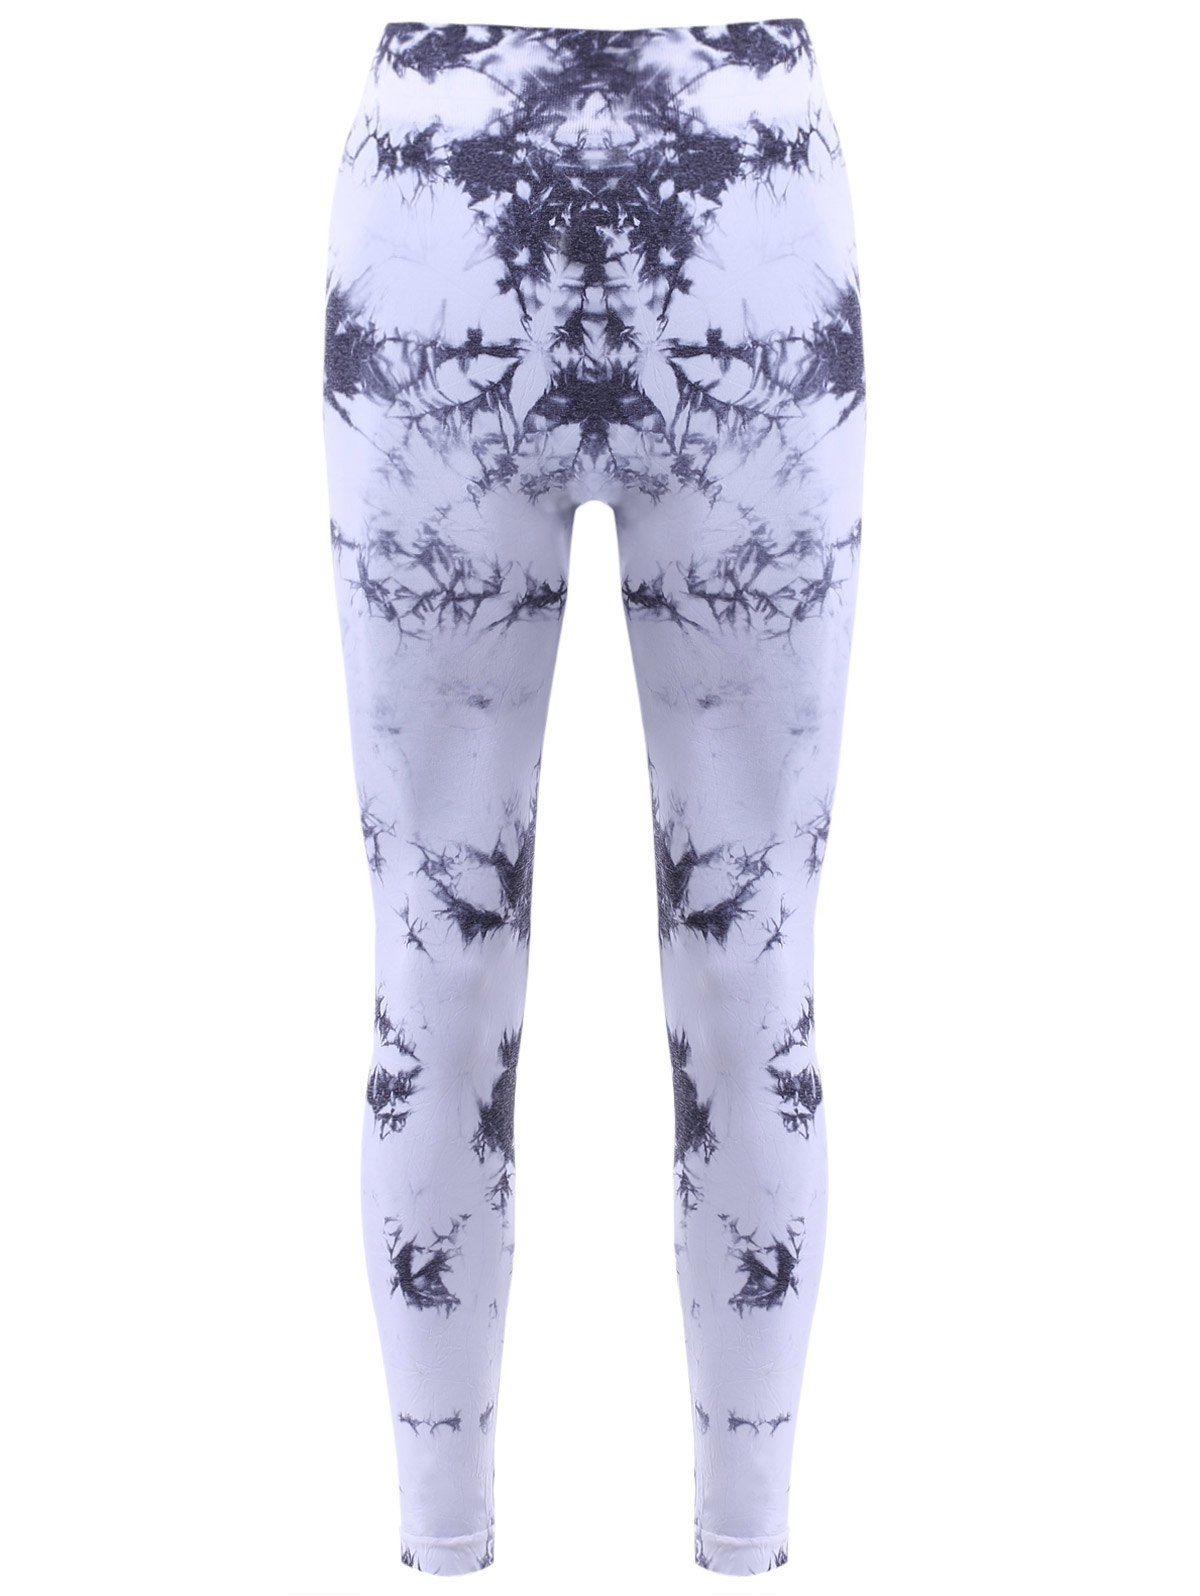 Elastic Waist Oli Printed Women's Sports Leggings